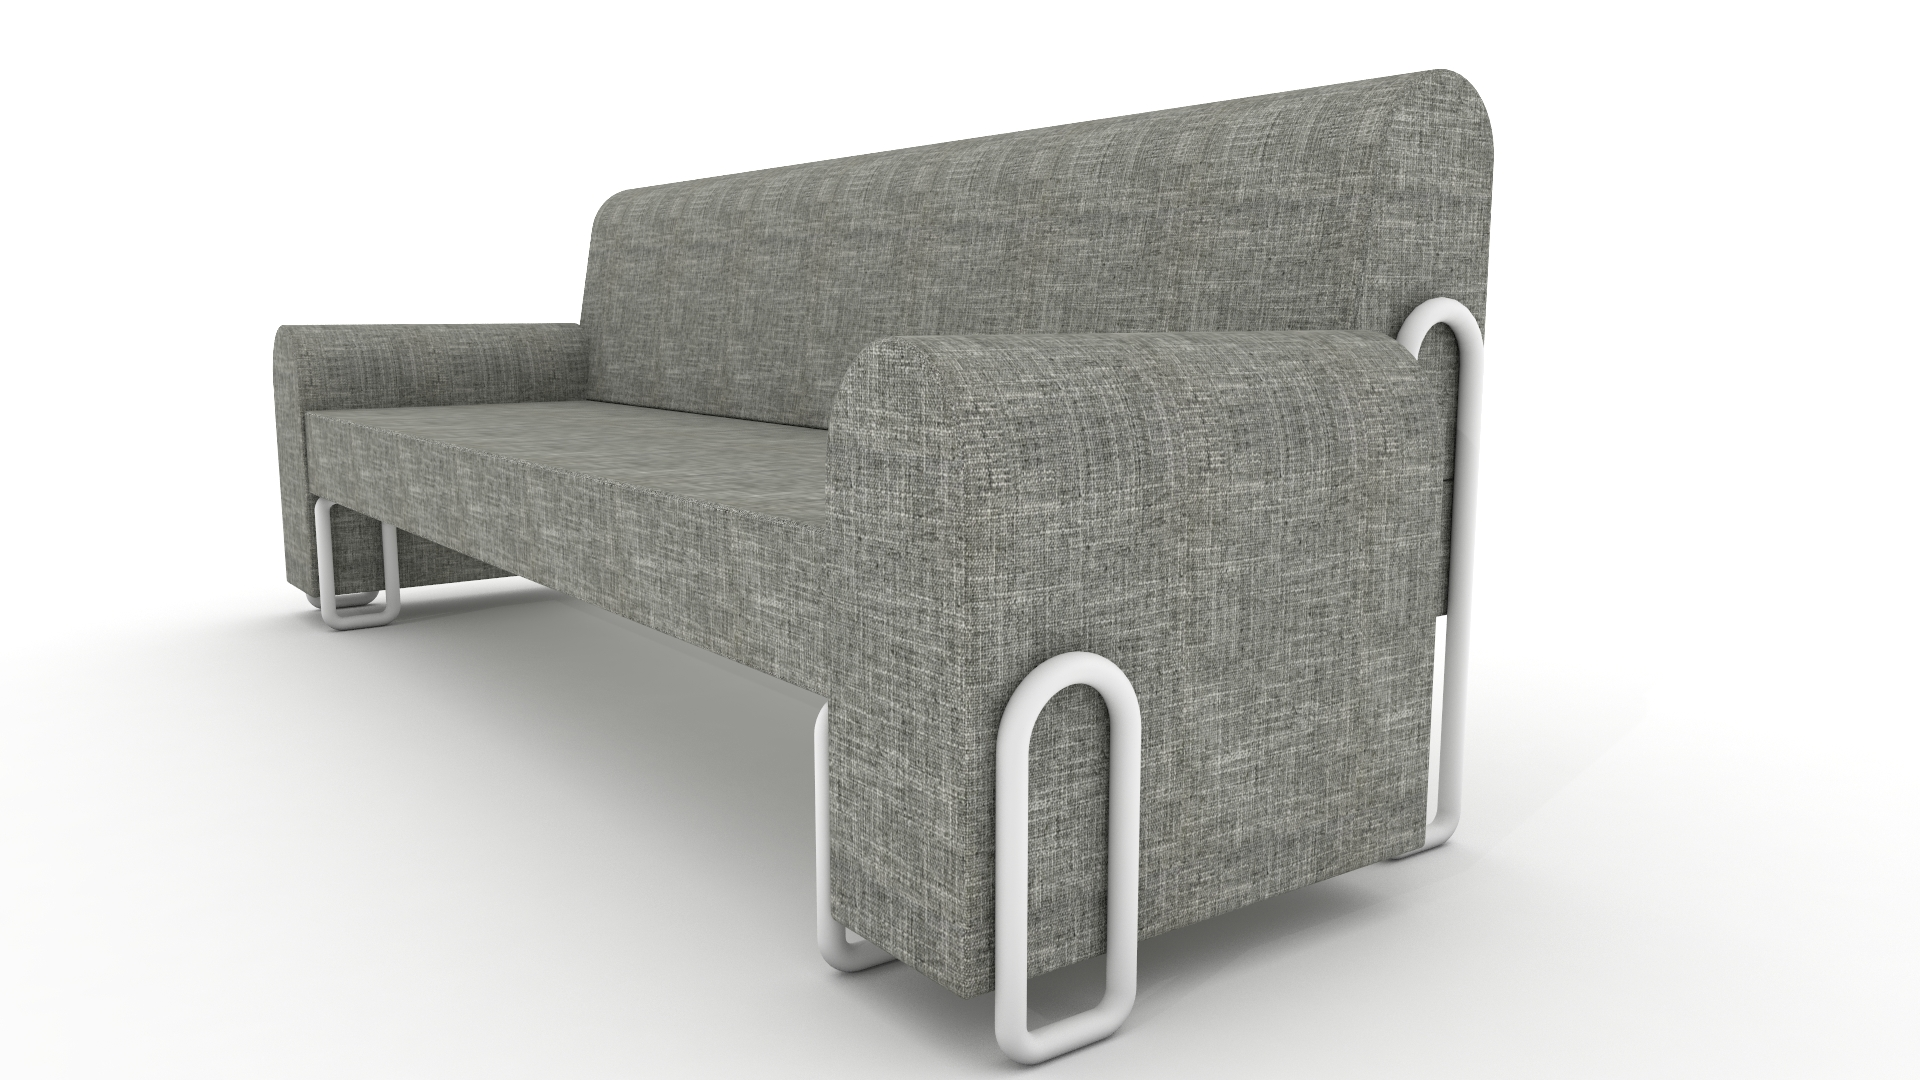 Round couch with metal legs 2.jpg